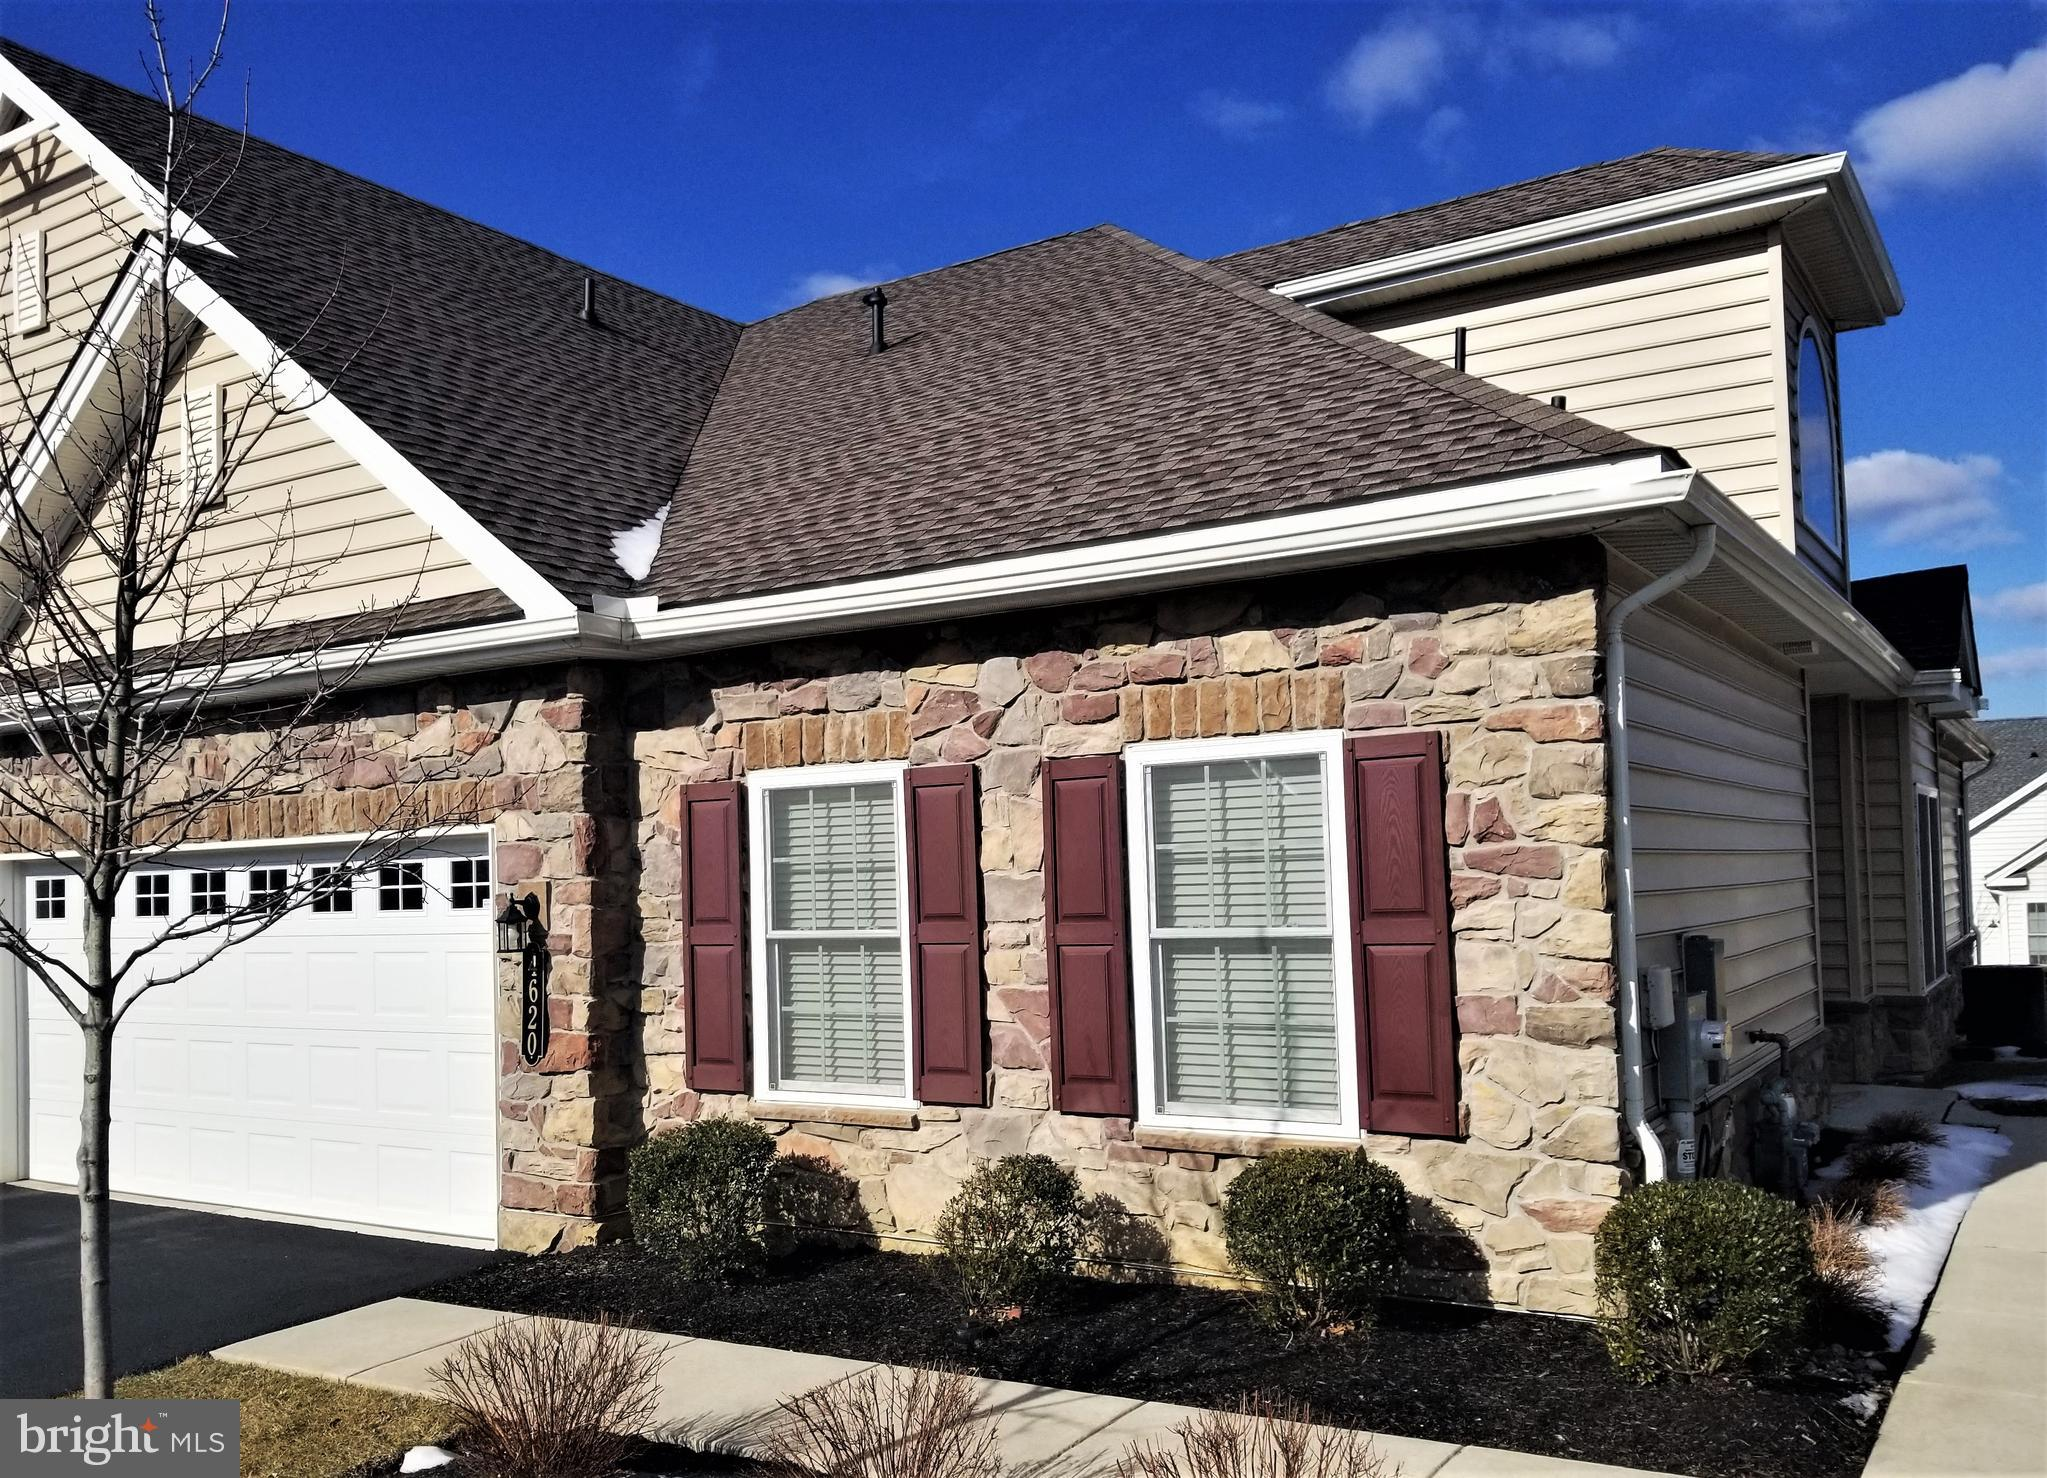 4620 FREEDOM WAY, CENTER VALLEY, PA 18034